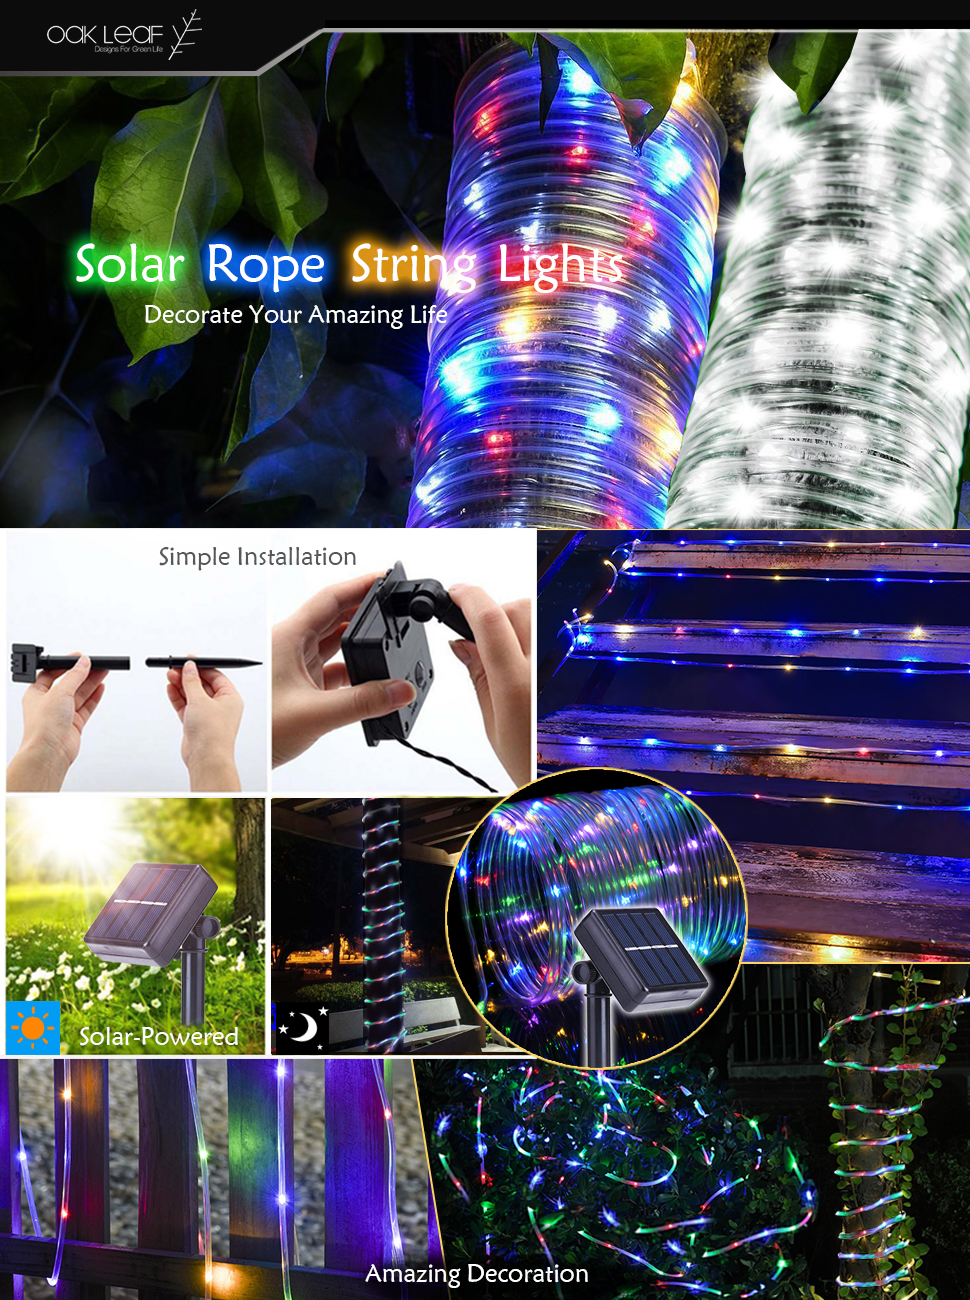 Solar rope lights oak leaf 41ft waterproof 100 led outdoor light up your outdoor areas carefully protect your sockets and lights from water if thats exactly where you are oak leaf solar rope lights can bring aloadofball Choice Image